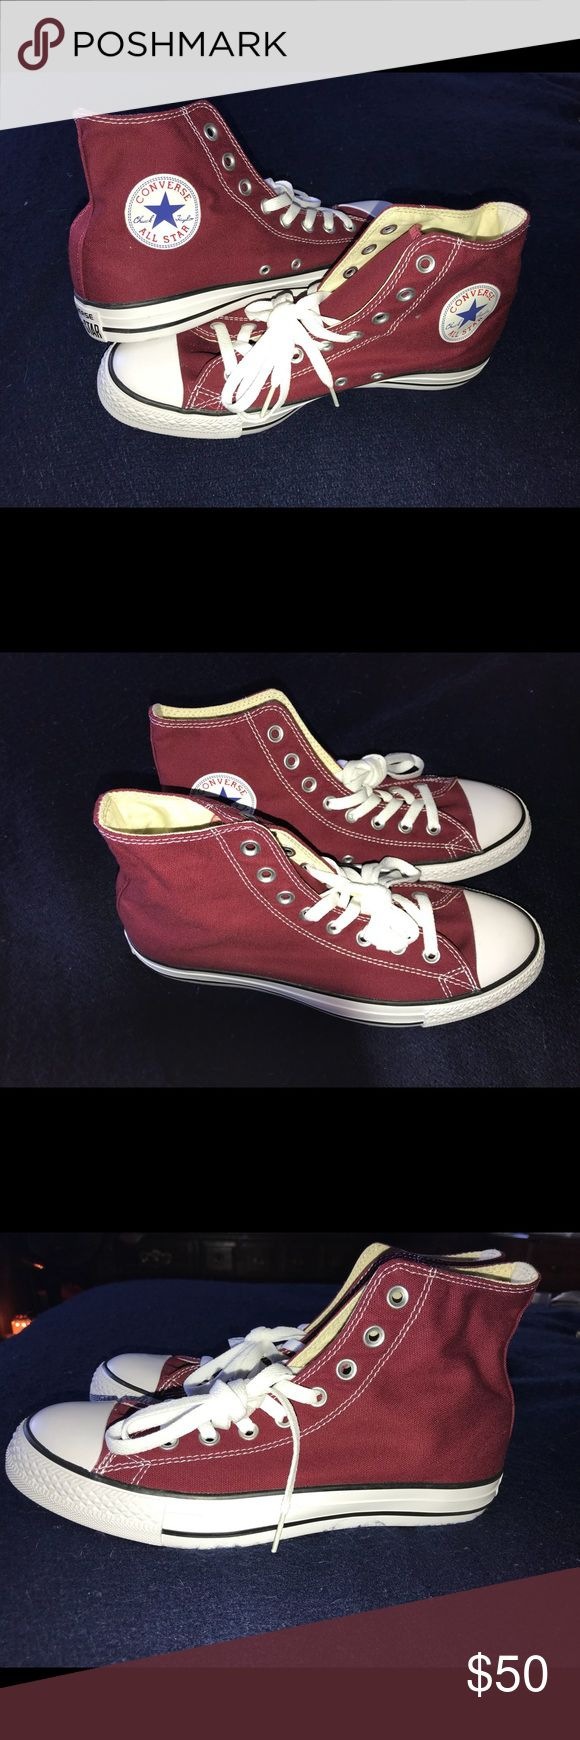 Chuck Taylor high top converse Maroon converse. Size 10 in women's 8 in men's. Brand new never worn. Bought them and they were too big chuck taylor Shoes